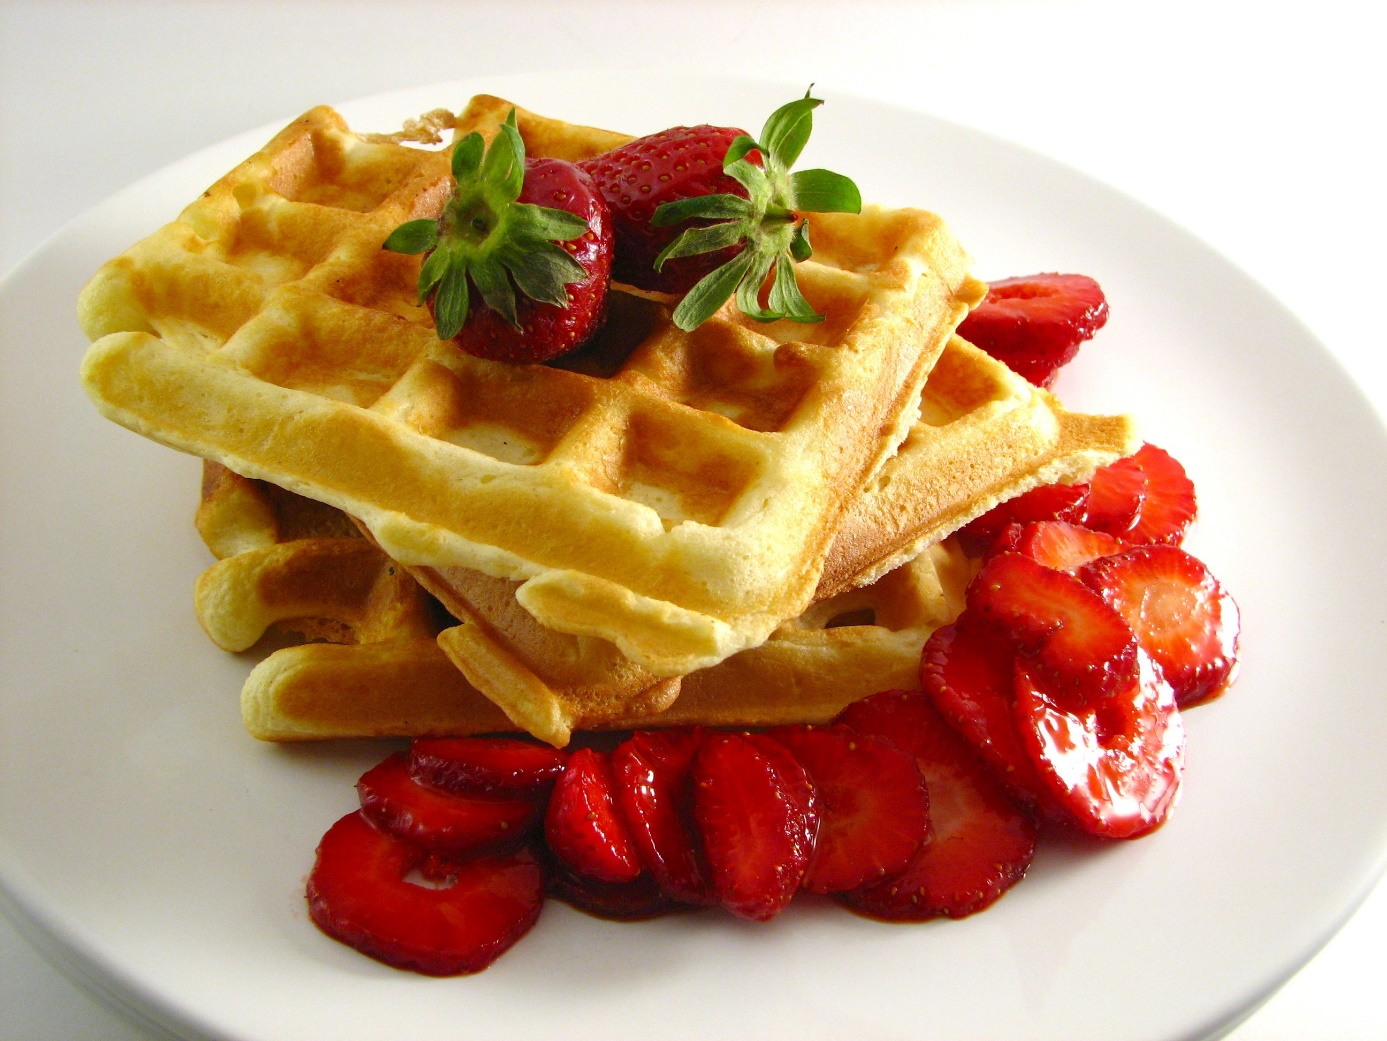 Valentine's Day breakfast – waffles with strawberries